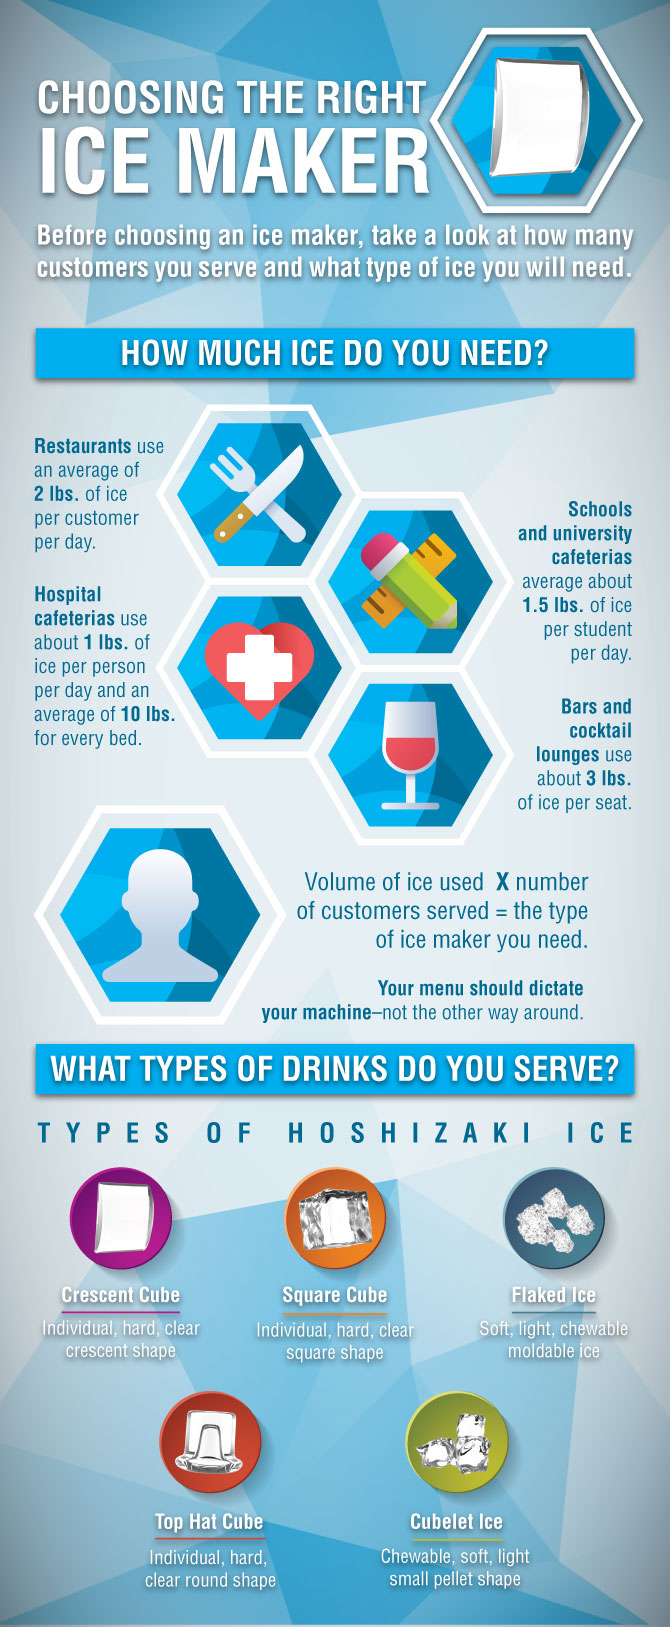 IceMaker_infographic